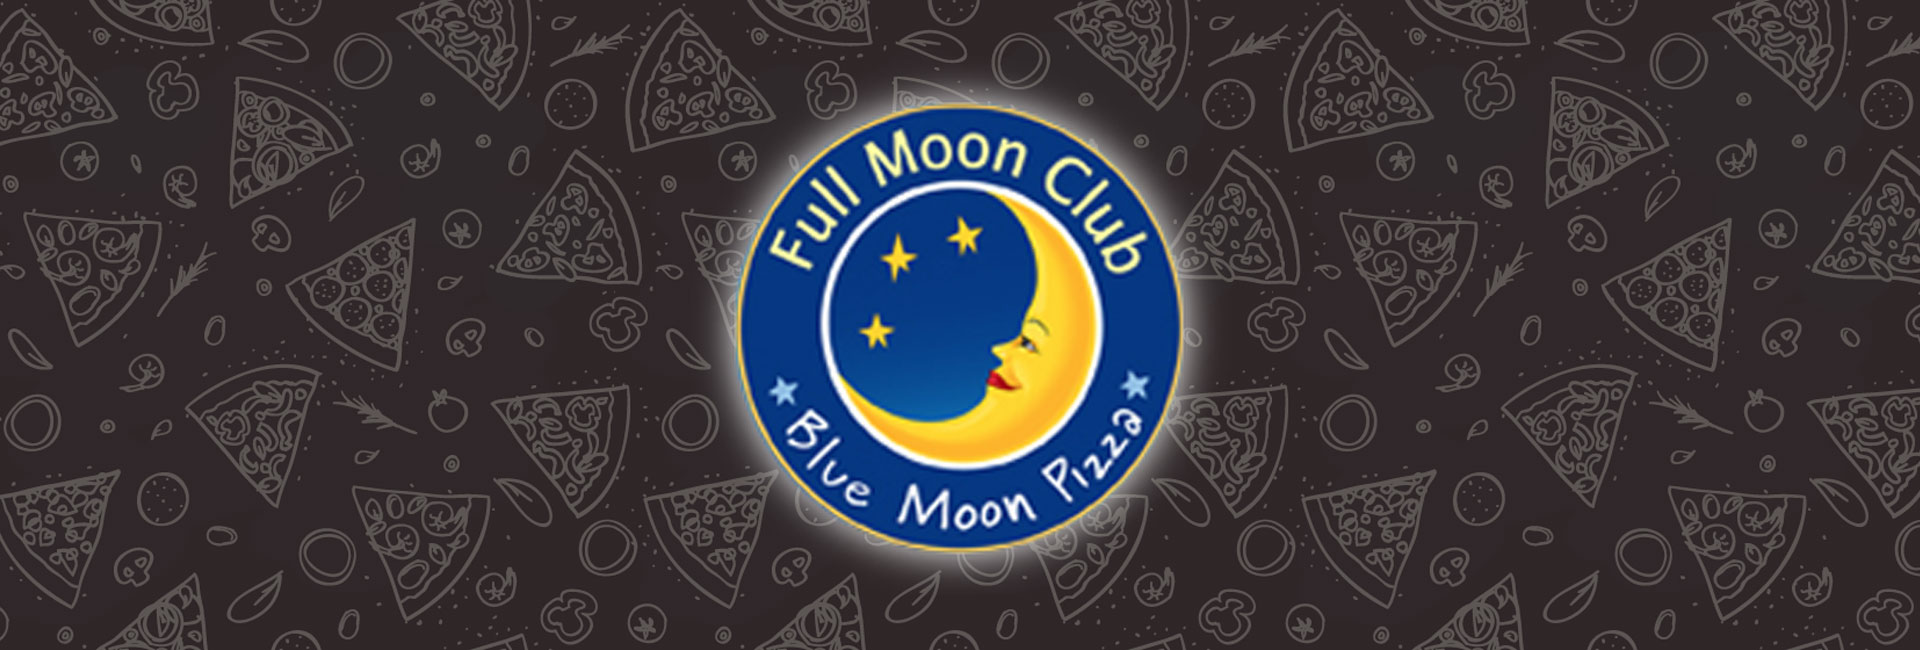 Join The Full Moon Club - Blue Moon Pizza